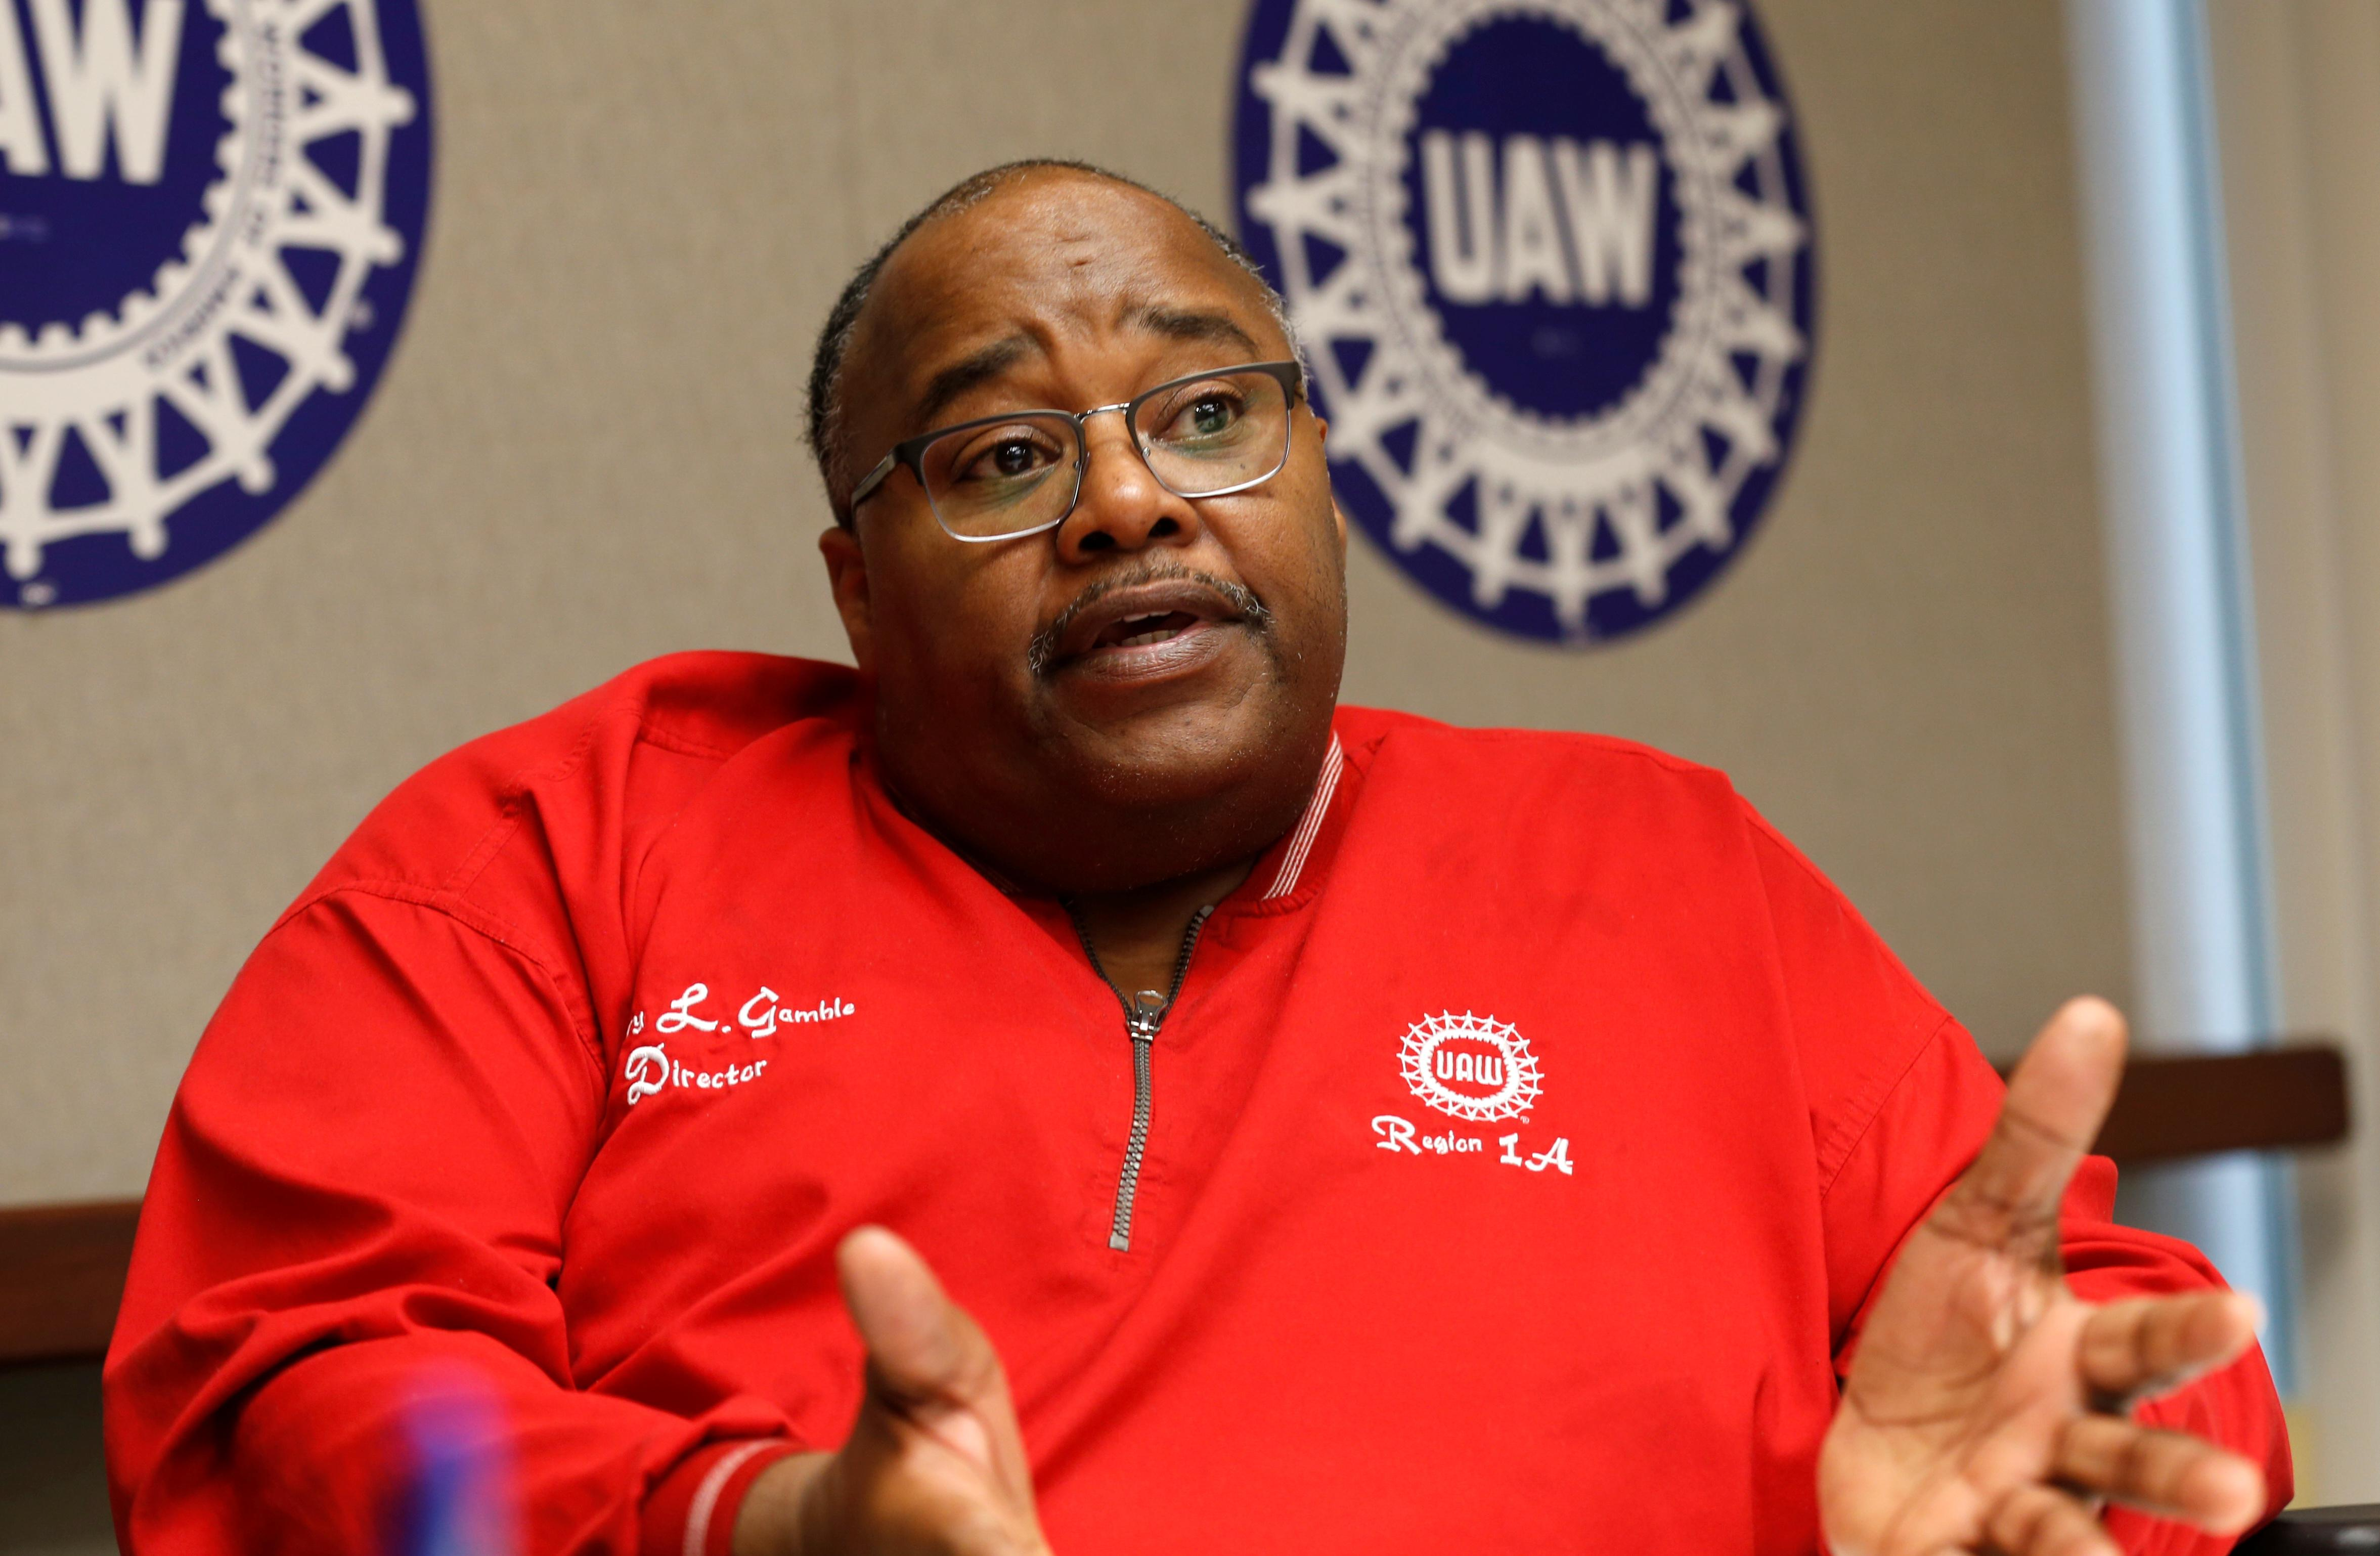 United Auto Workers union names reformer Gamble president until 2022